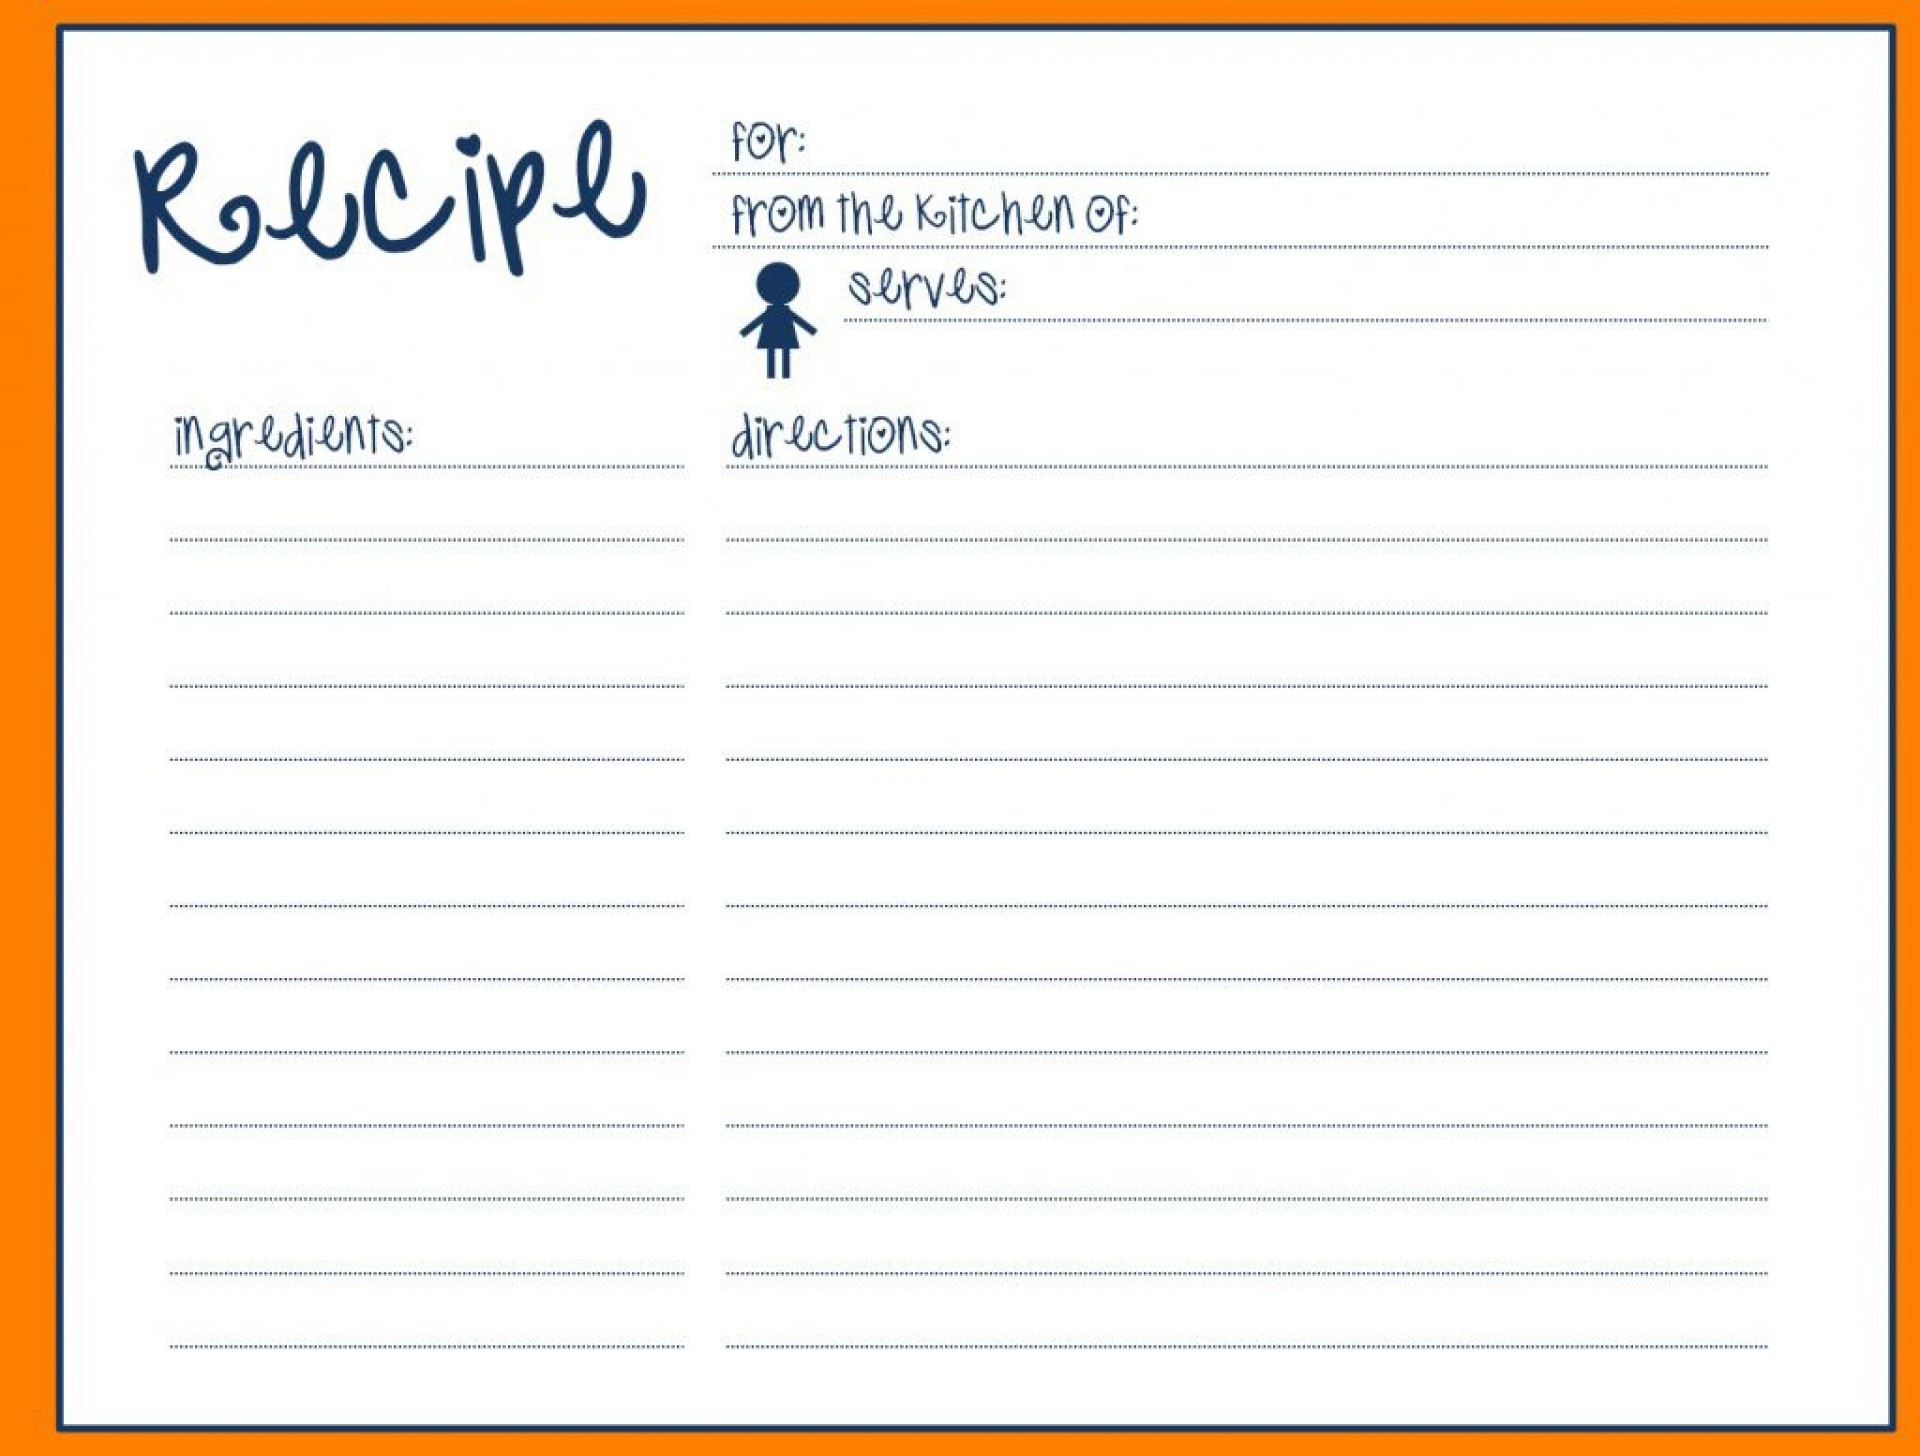 004 Beautiful Fillable Recipe Card Template High Definition  For Word Free1920